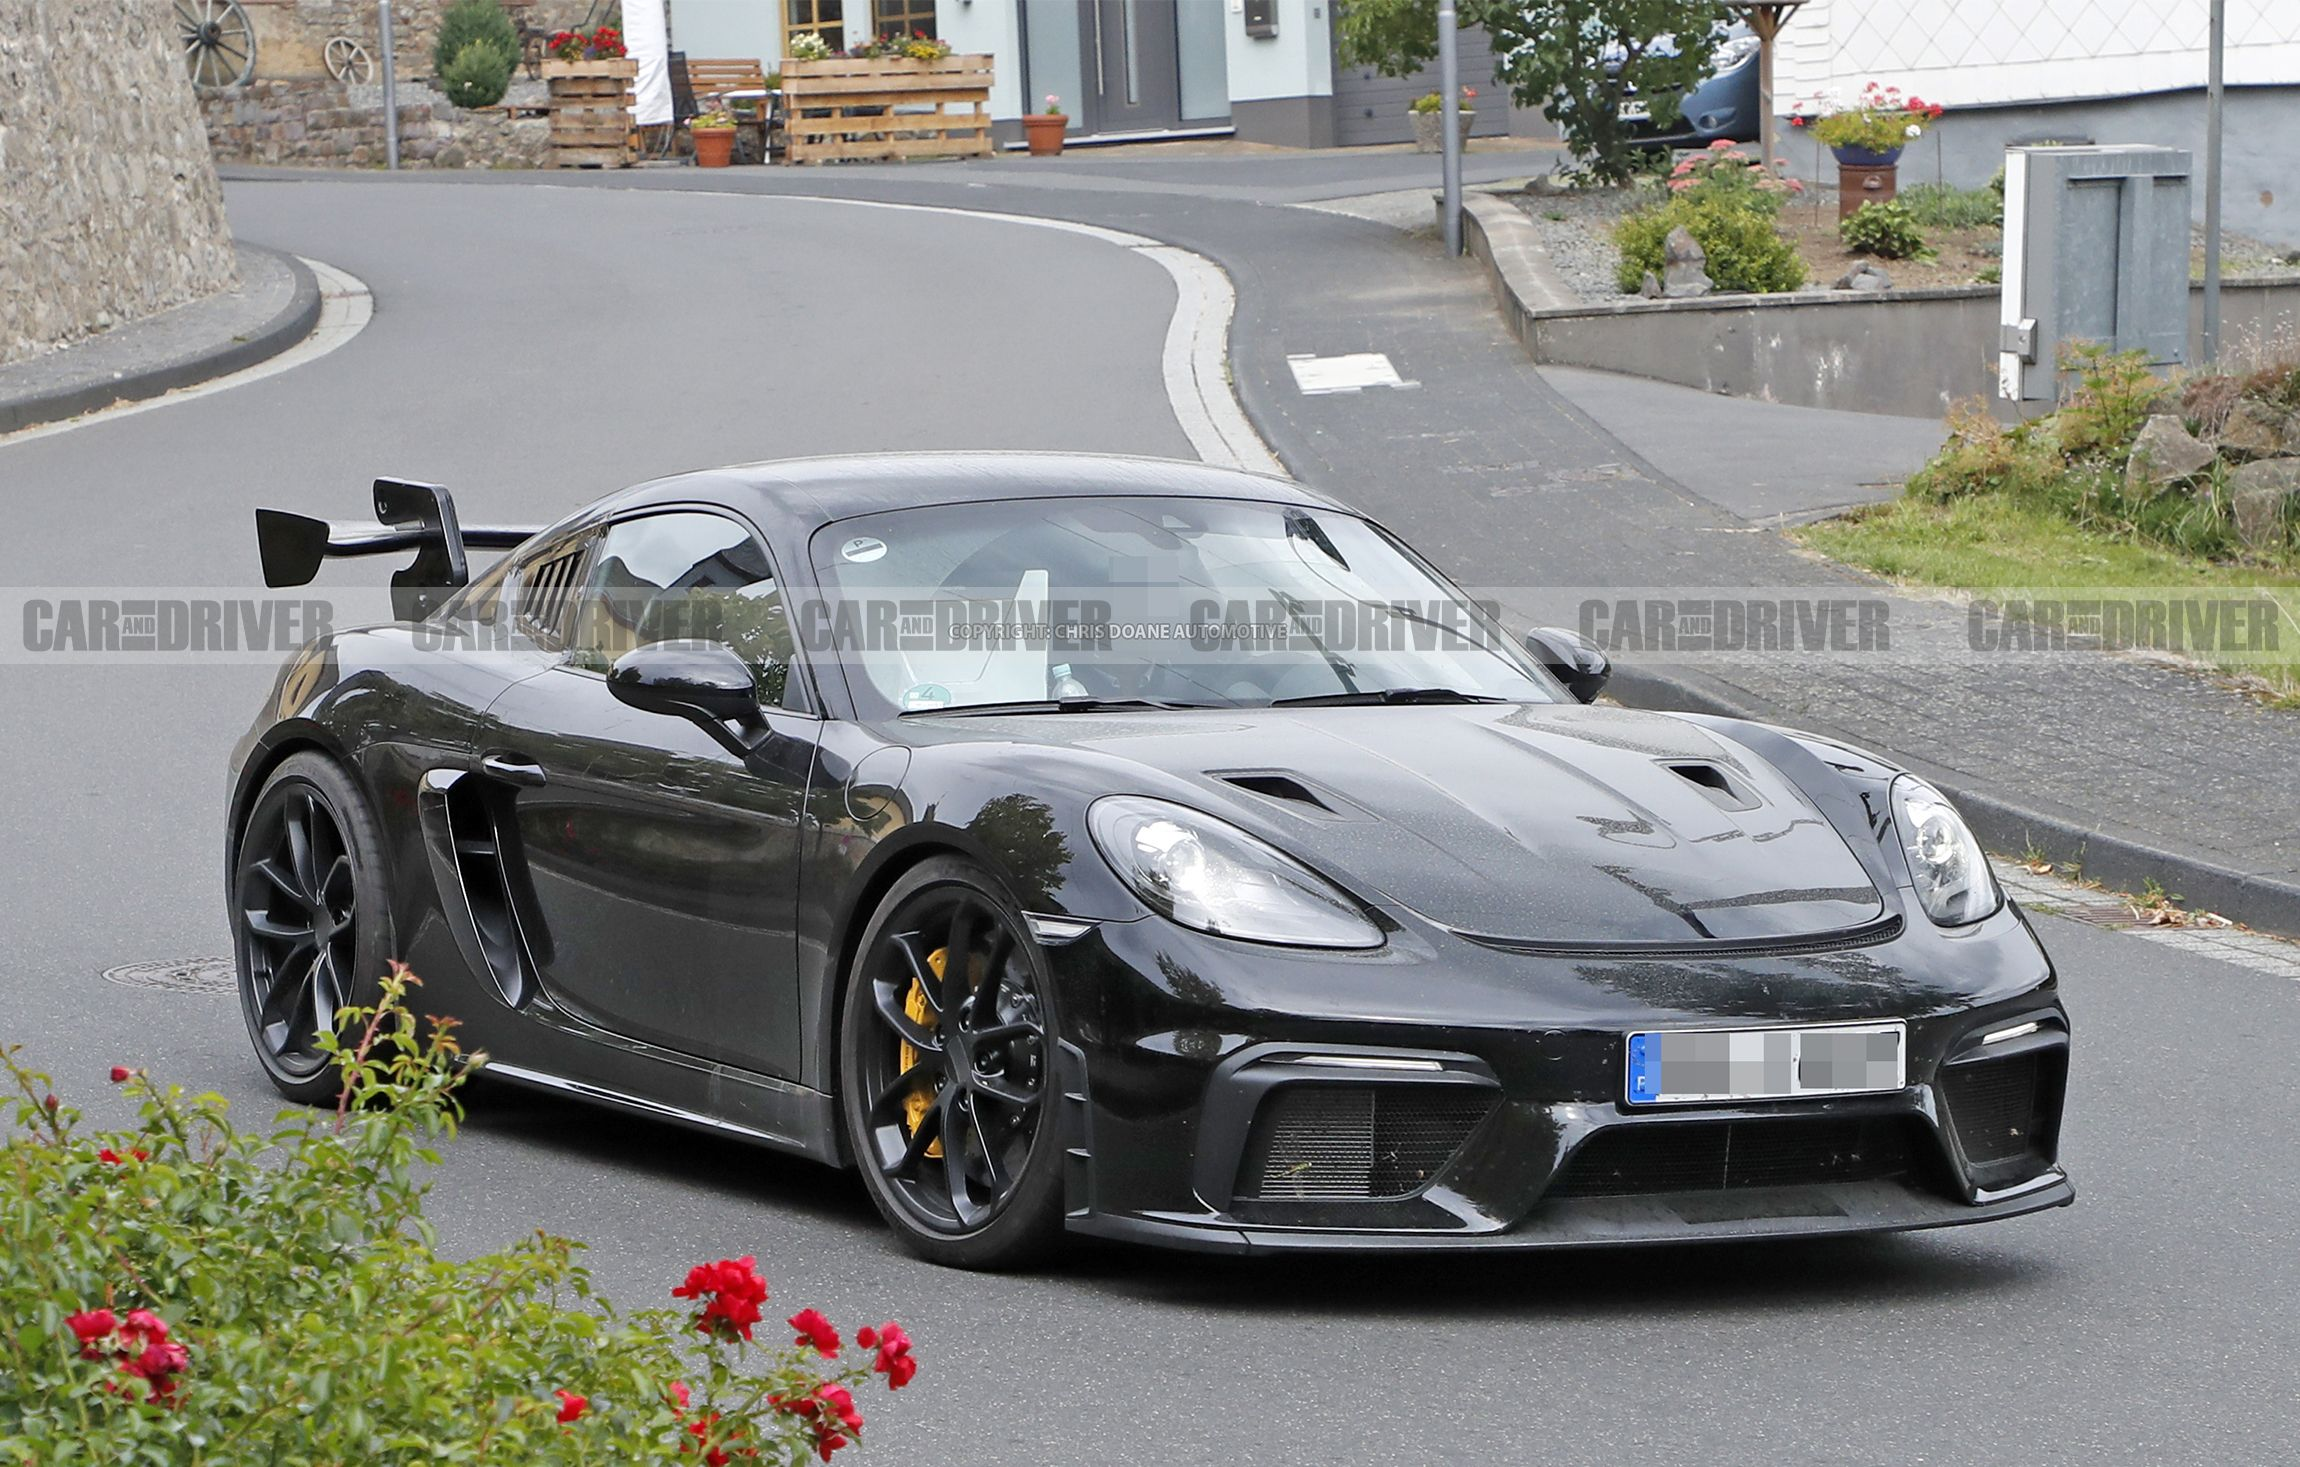 Porsche Cayman GT4 RS Spied Looking Ready for Track Duty